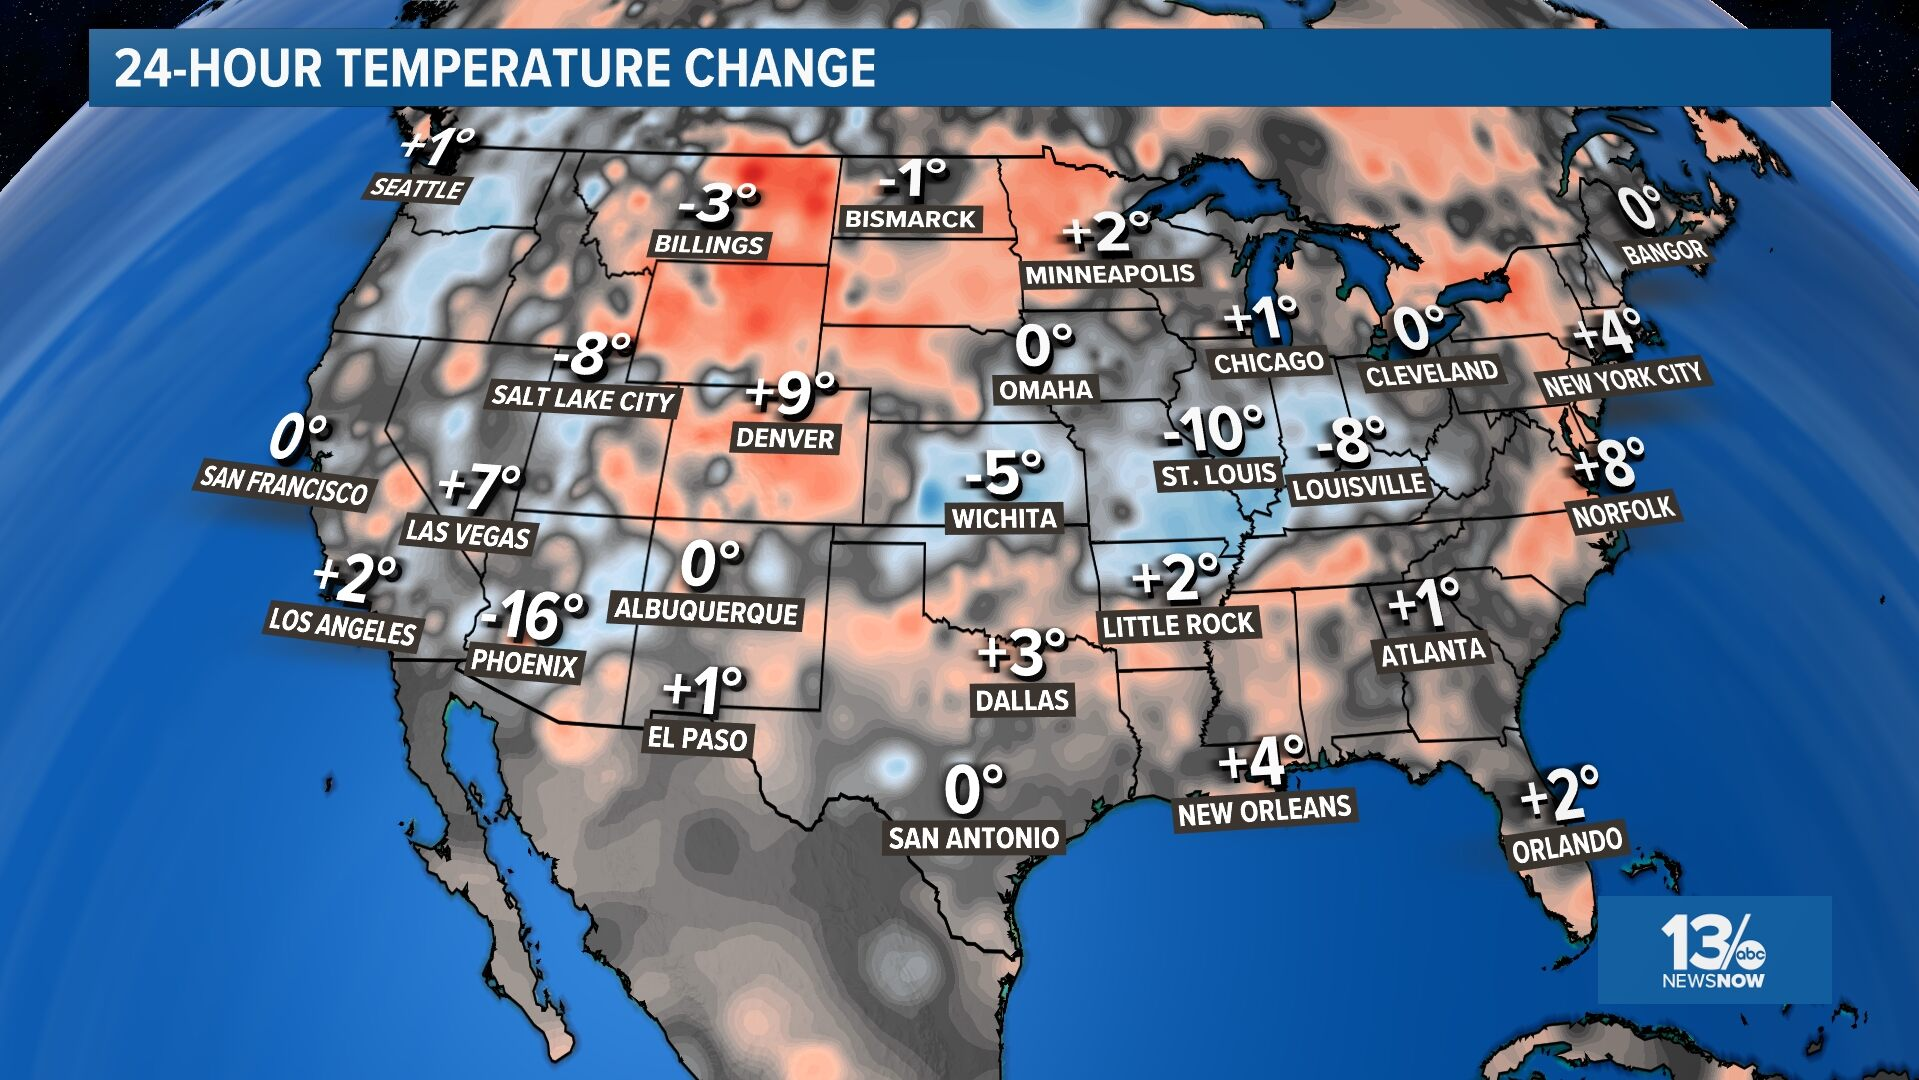 National 24 Hour Temperature Change